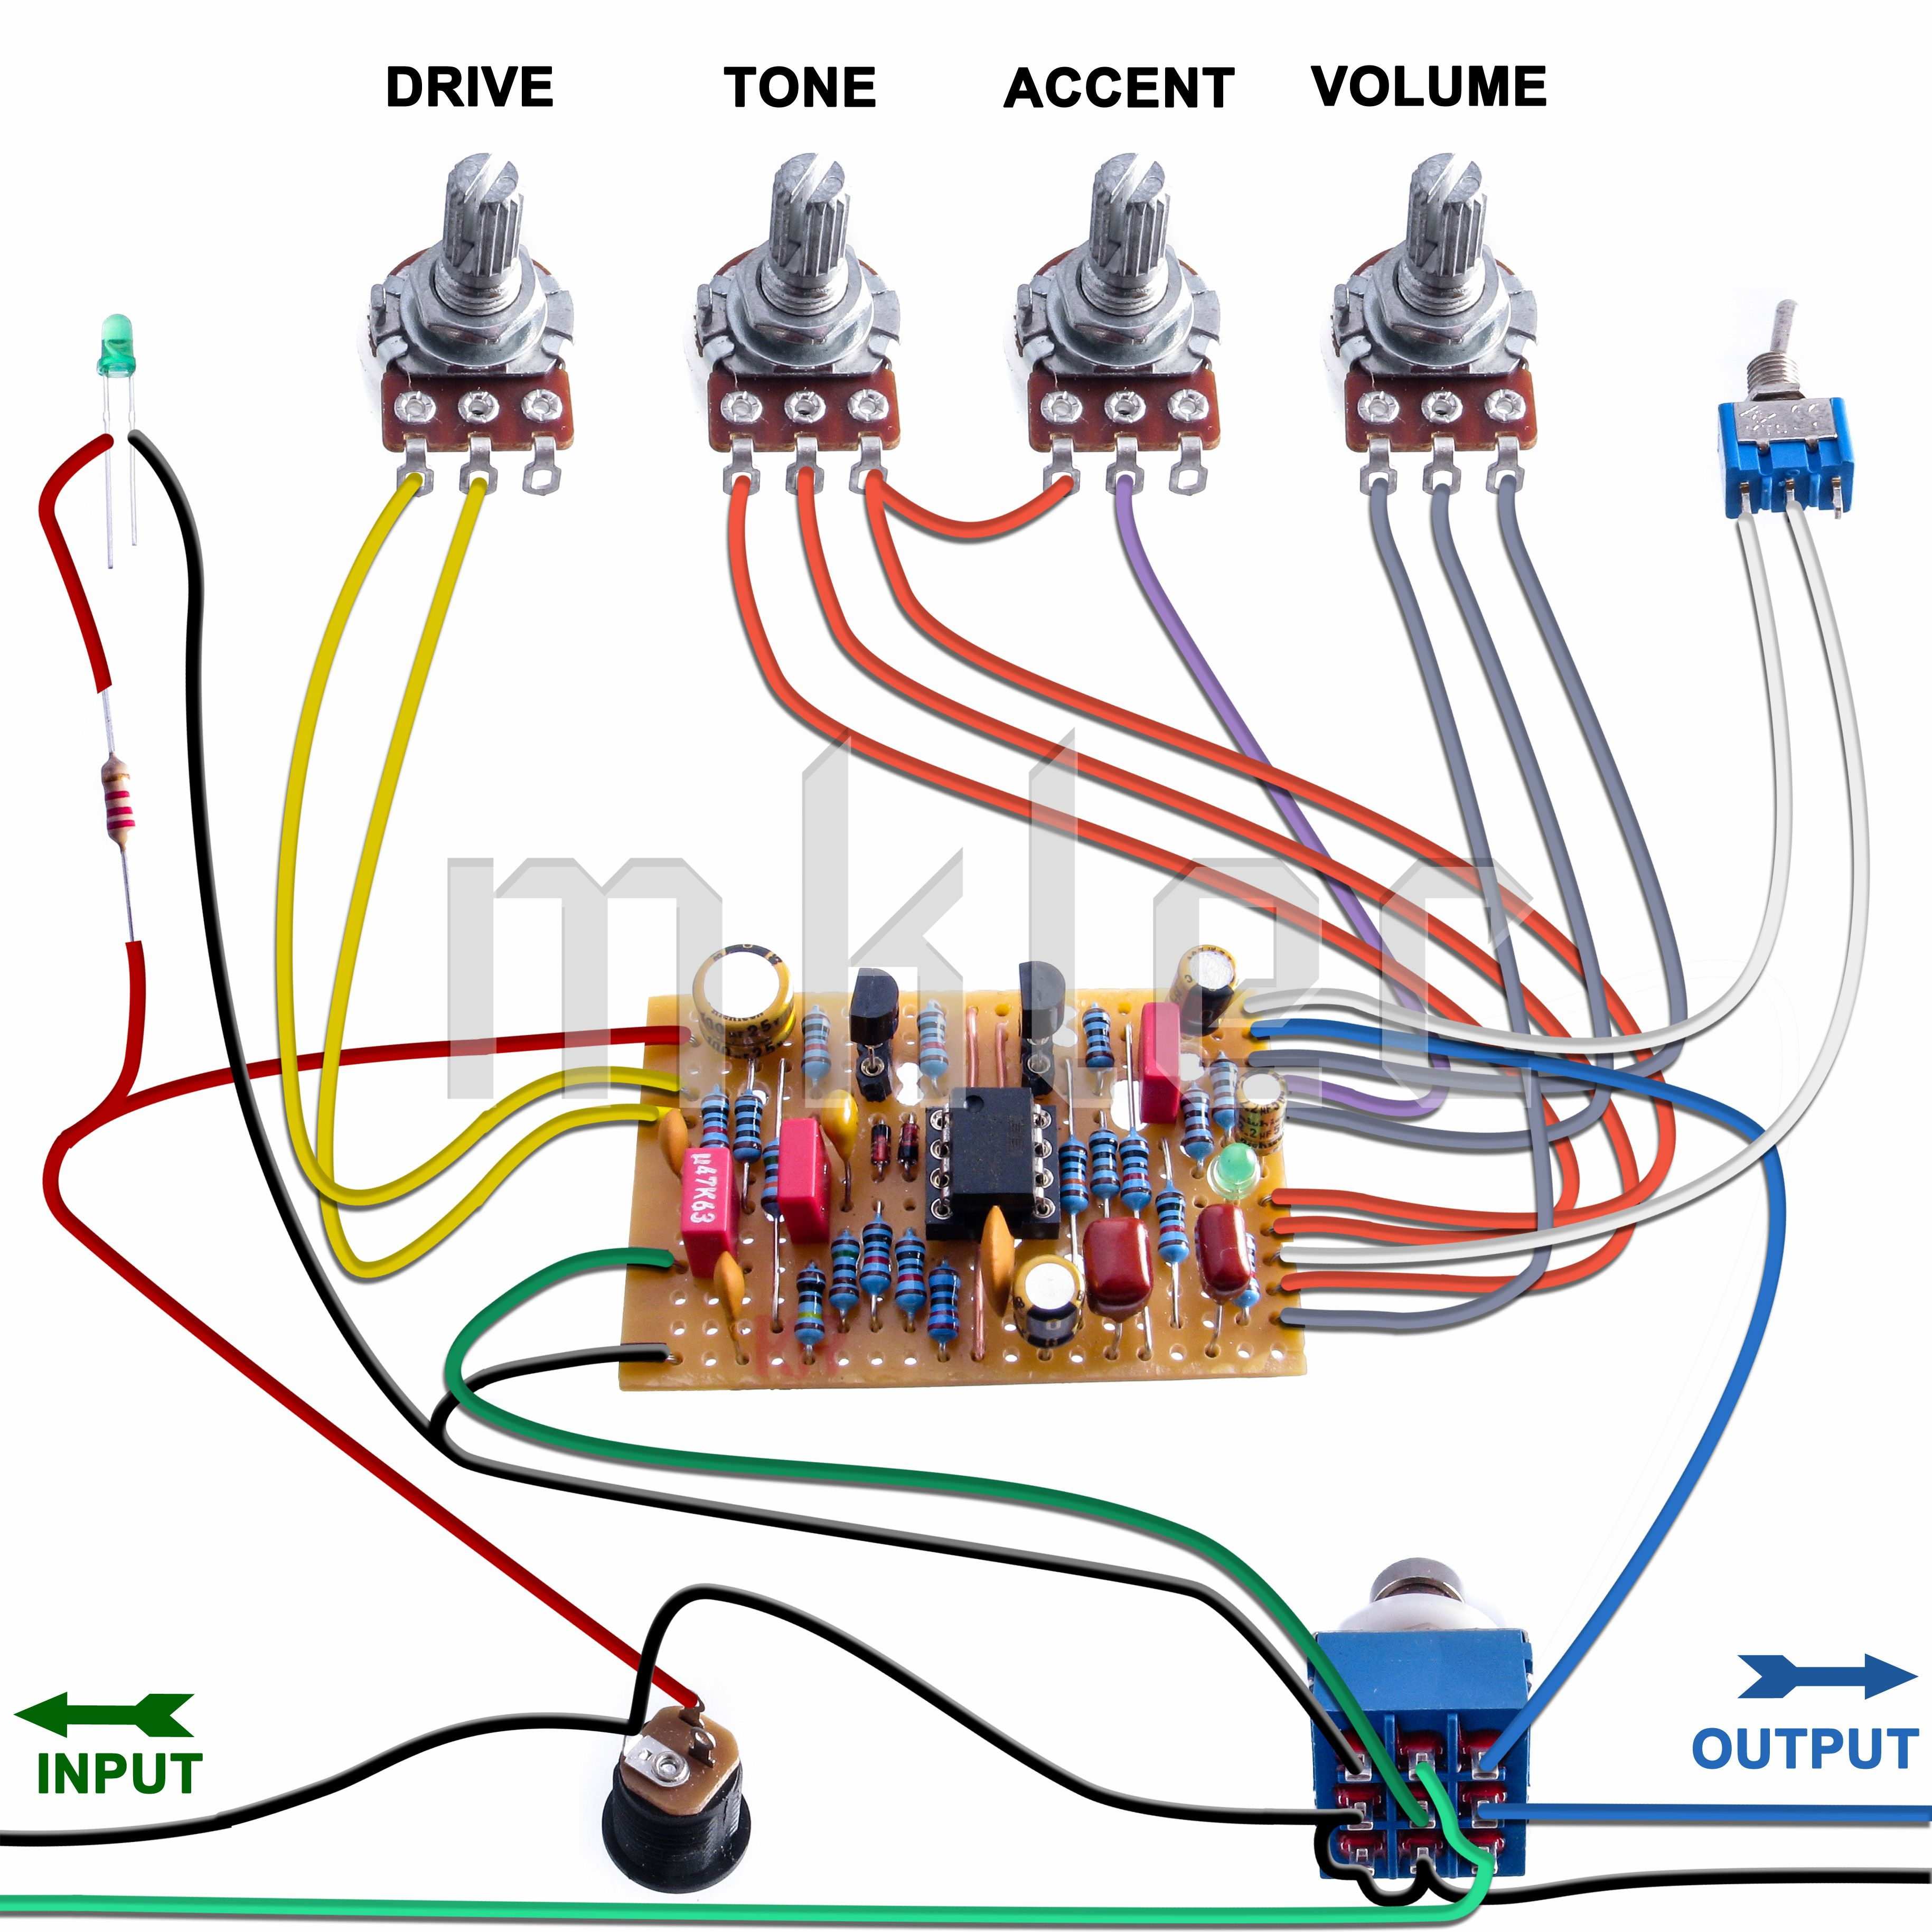 small resolution of guitar effects pedal offboard wiring demystified guitar wiring electric guitar wiring guitar effects pedal offboard wiring